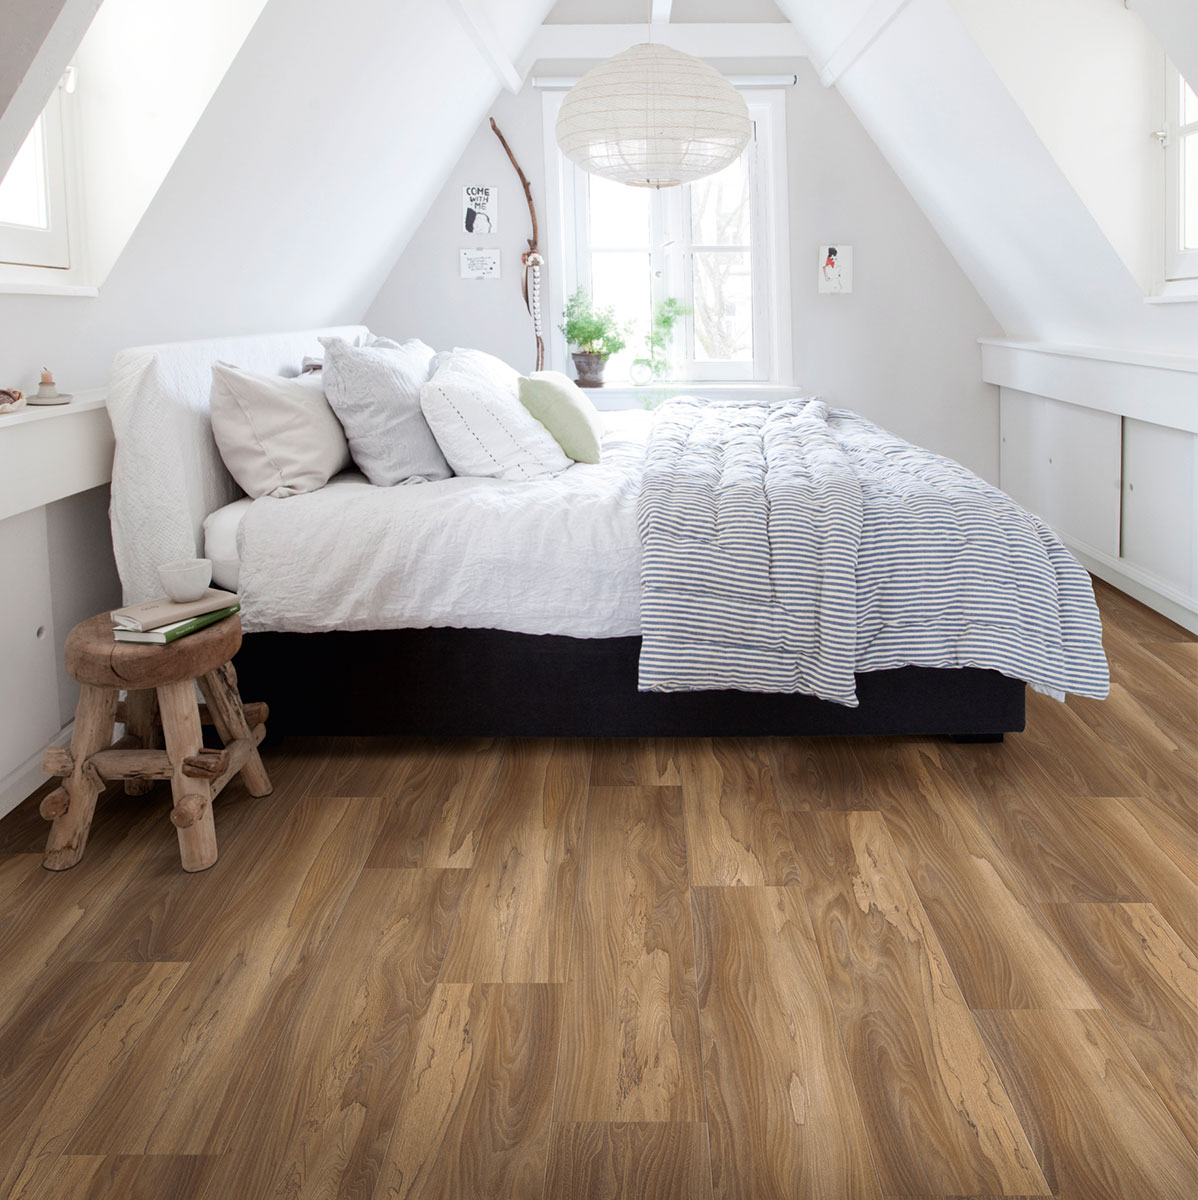 Luxury Vinyl Flooring in a bedroom